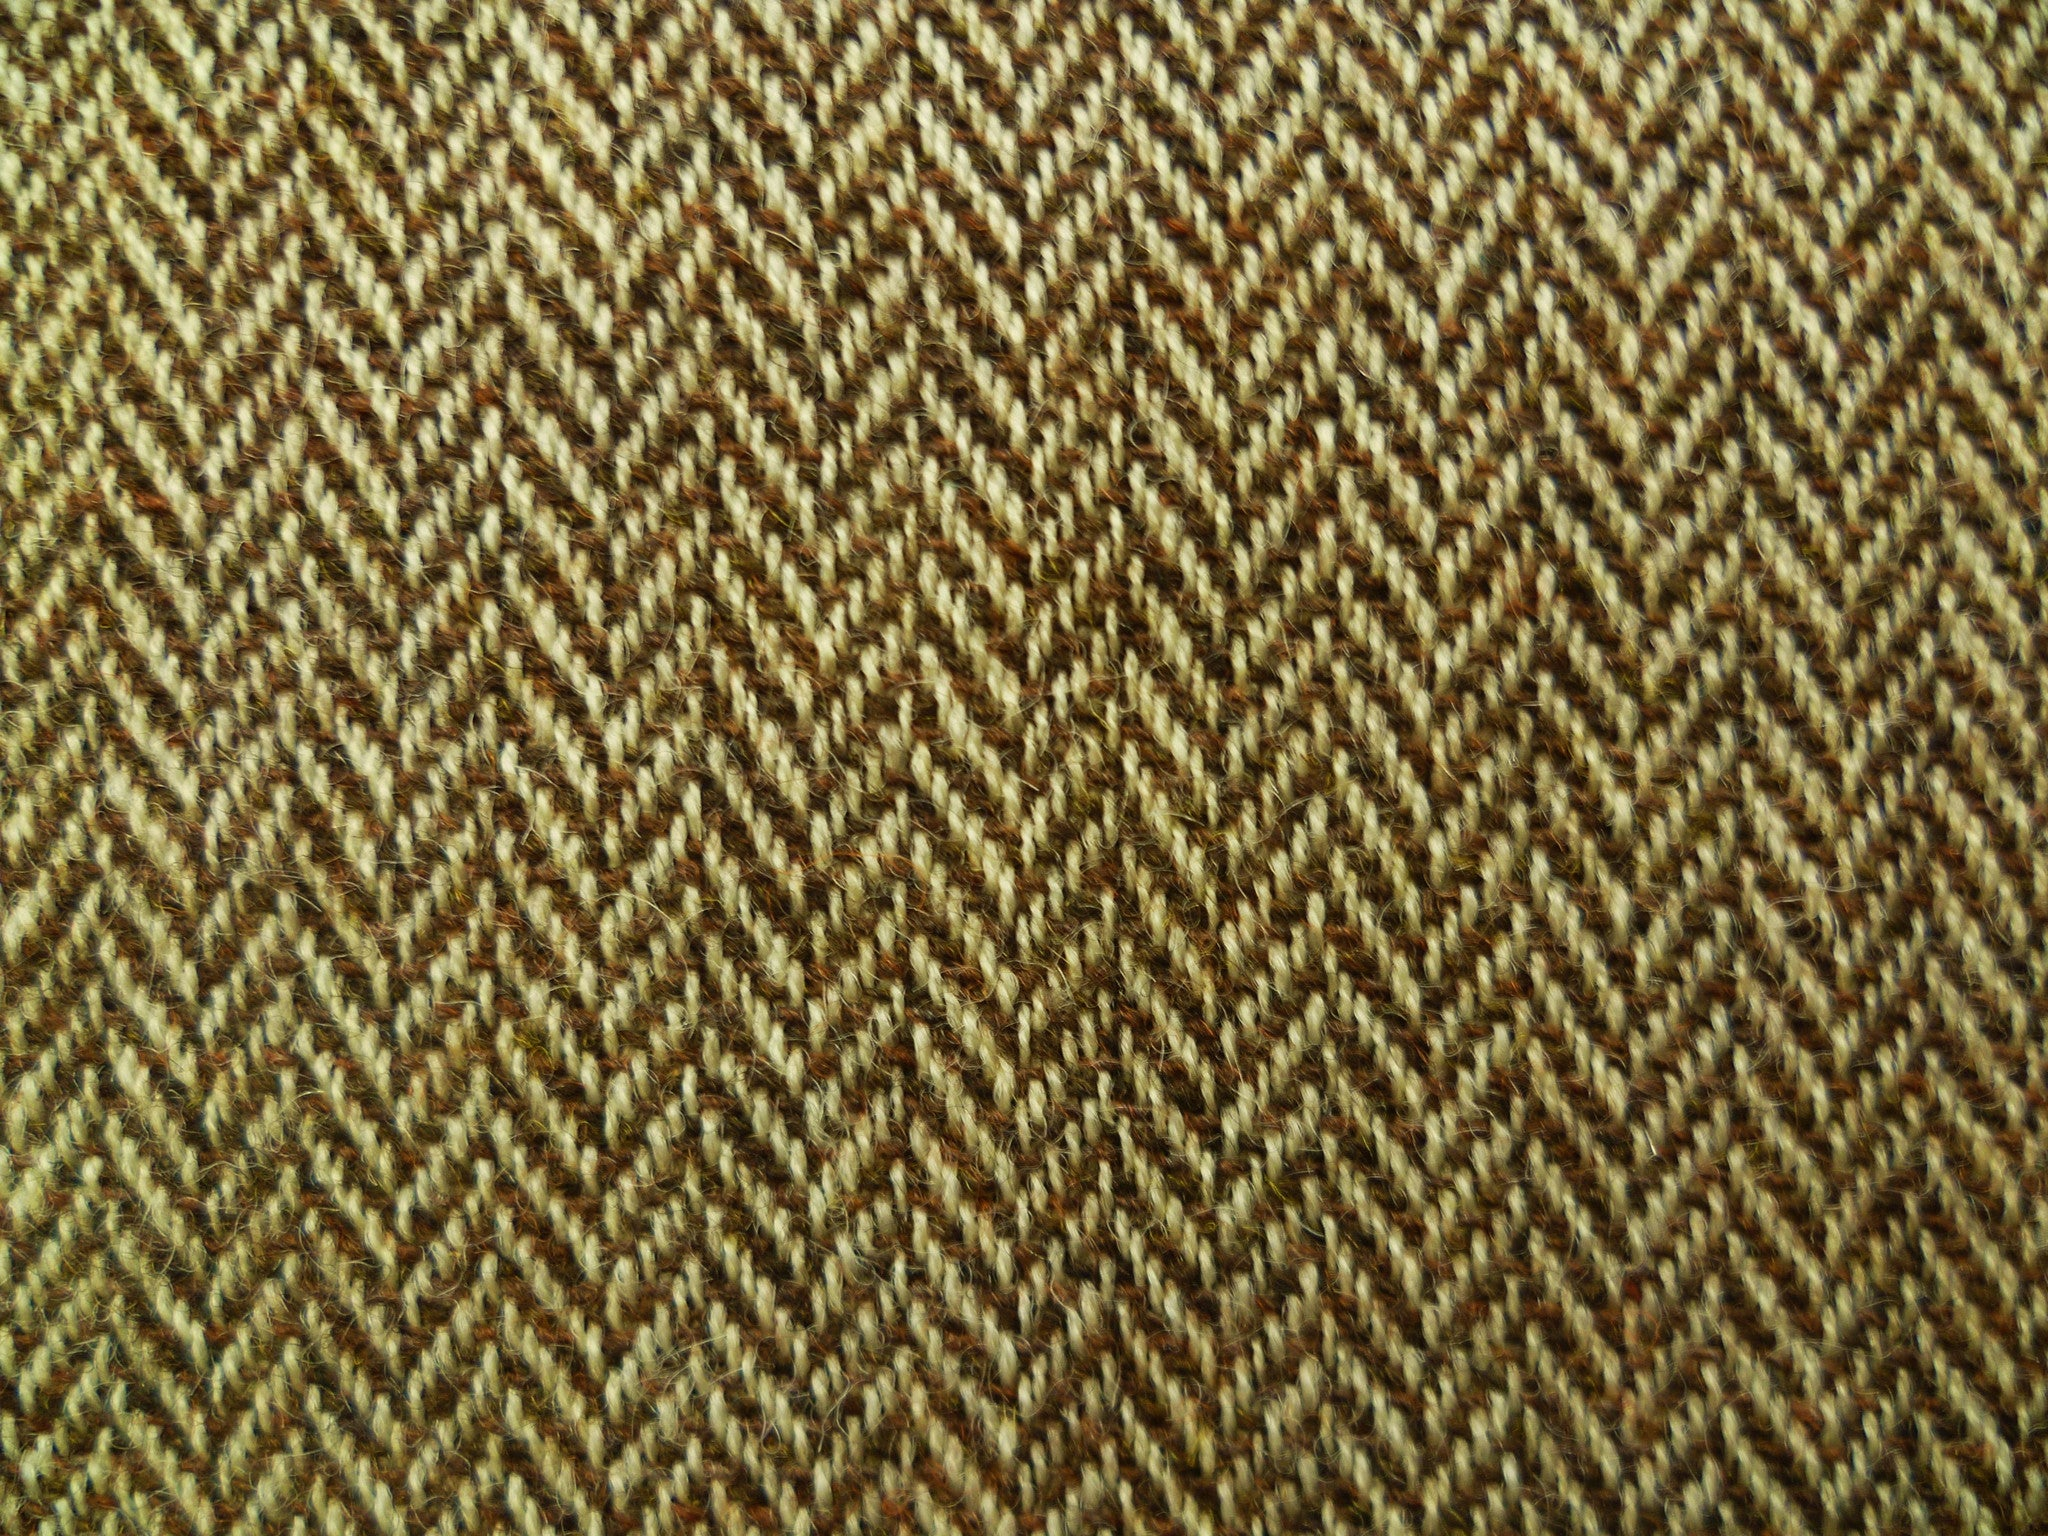 100% Worsted Wool 10-11 oz